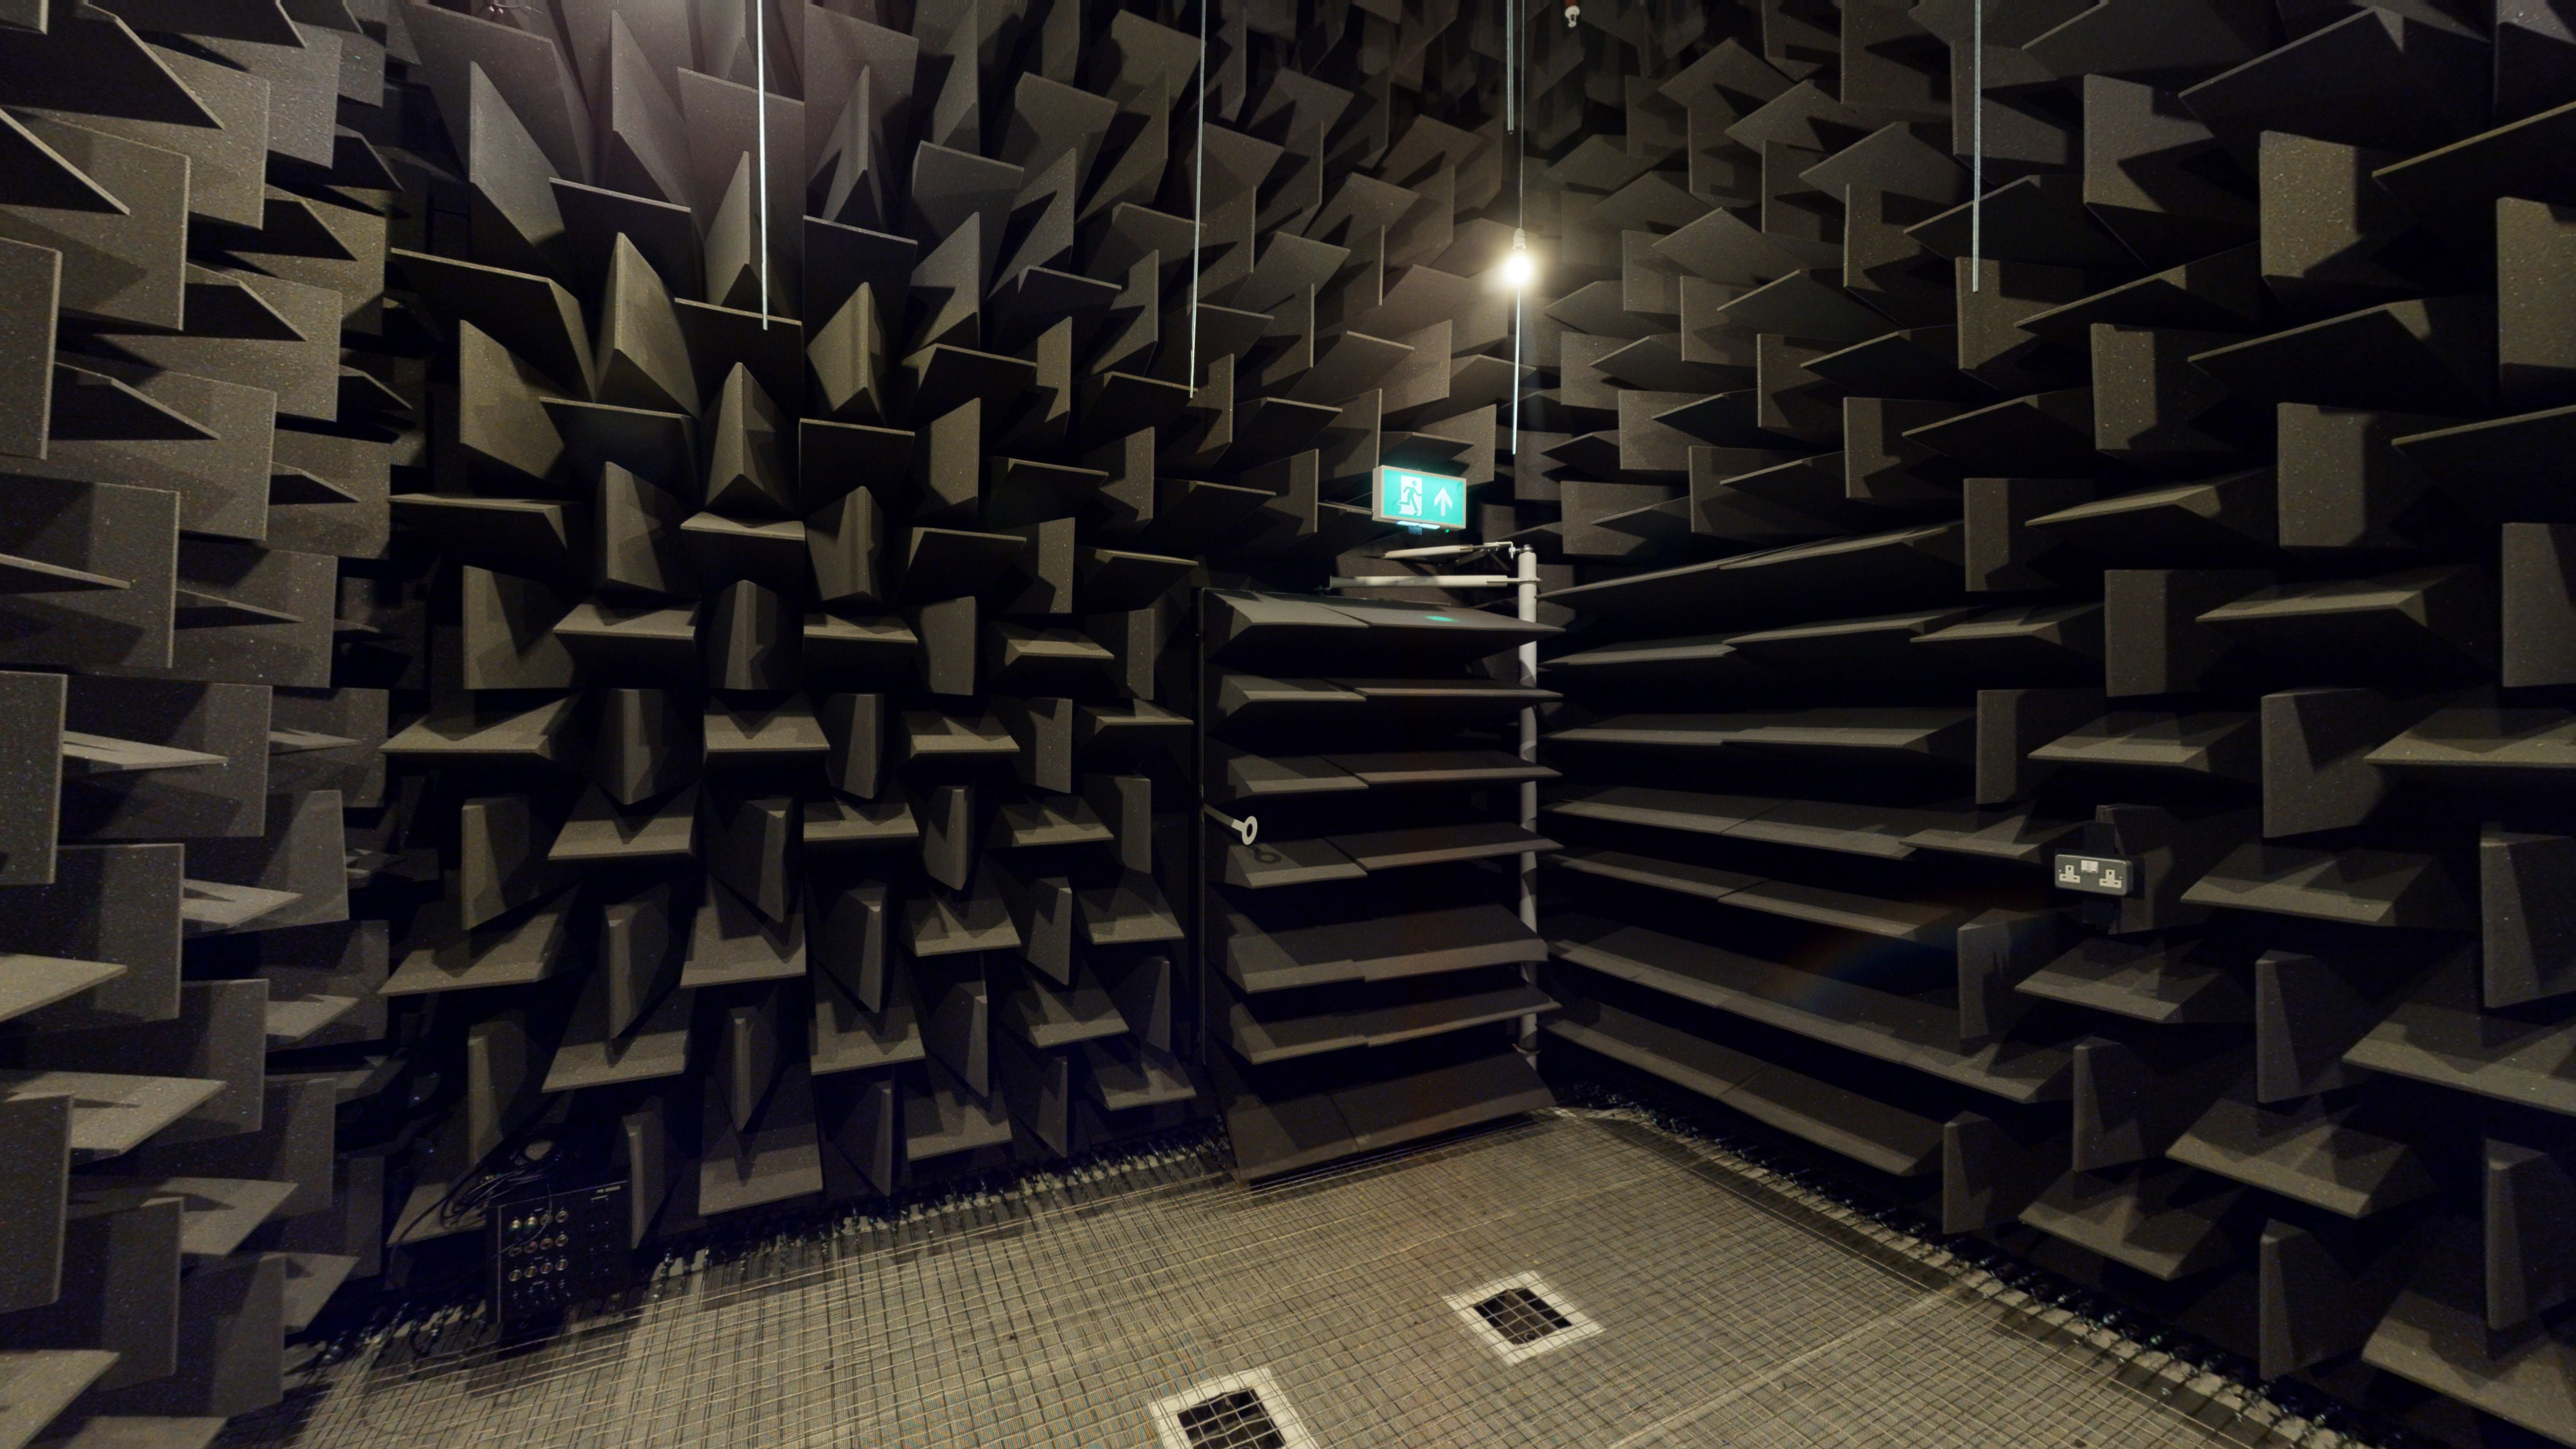 Chamber style room with every wall and the ceiling covered in wedged pieces of sound insulating foam.